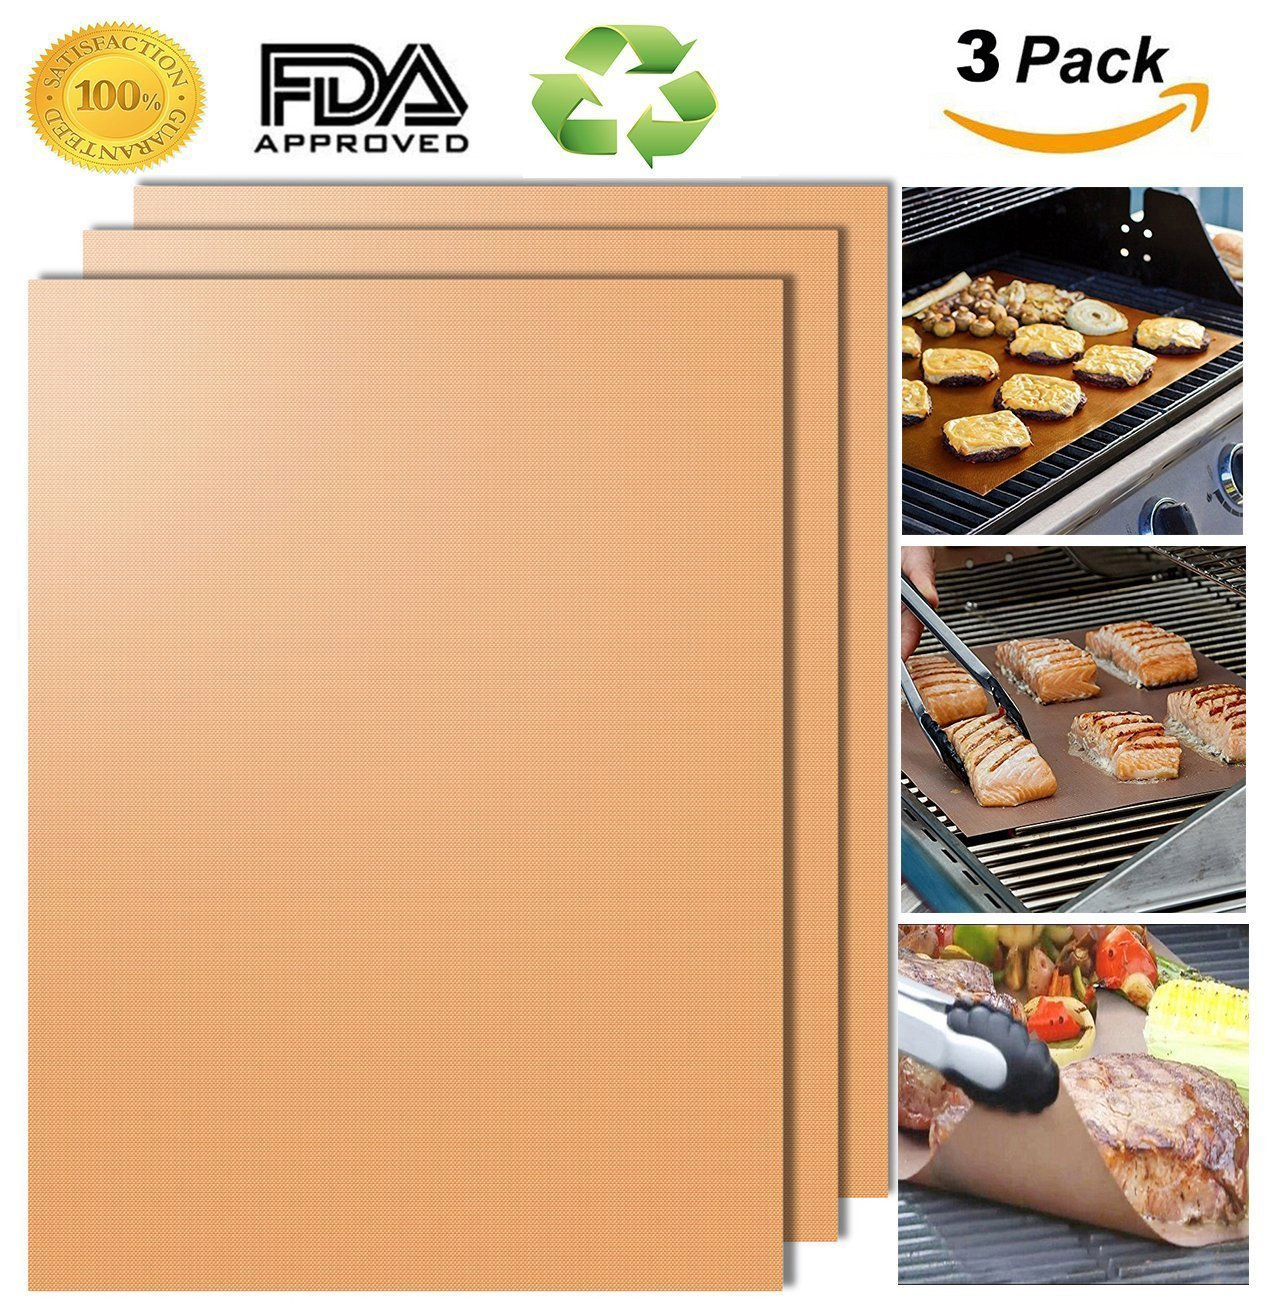 Hiistaring Grill Trays, Set of 3–100% Non-Stick BBQ Grill and Baking Mats–FDA Approved, PFOA Free, Reusable and easy to clean–works on, Charcoal, Electric BBQ Grill and more–1/2x 13